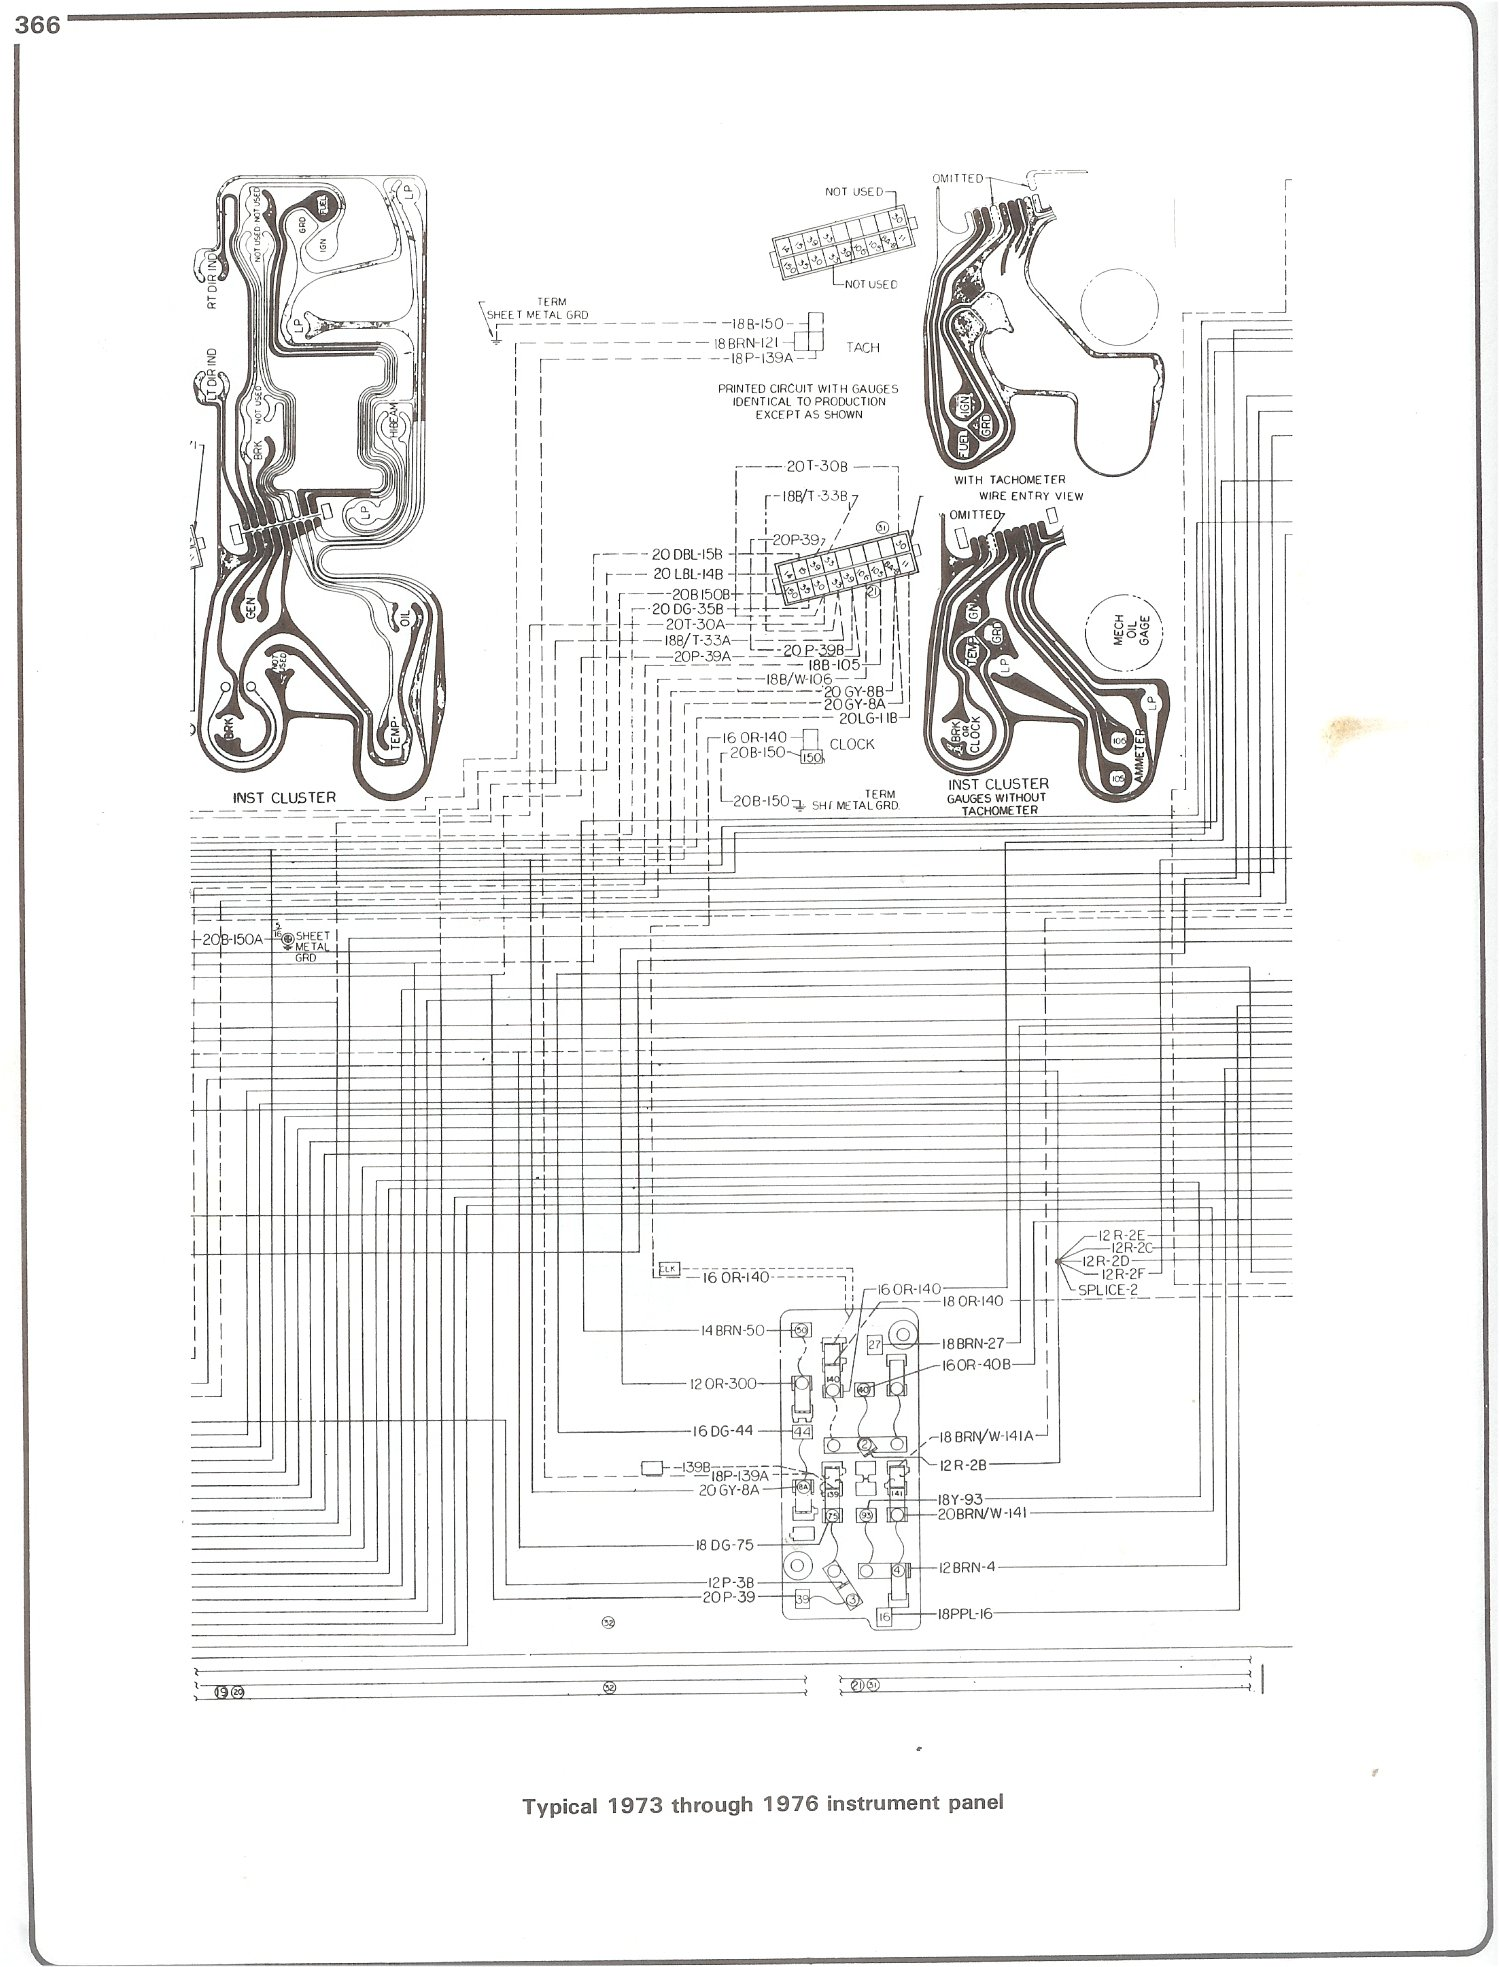 76 Chevy Van Wiring Diagram Diagrams Express Schematics Complete 73 87 2006